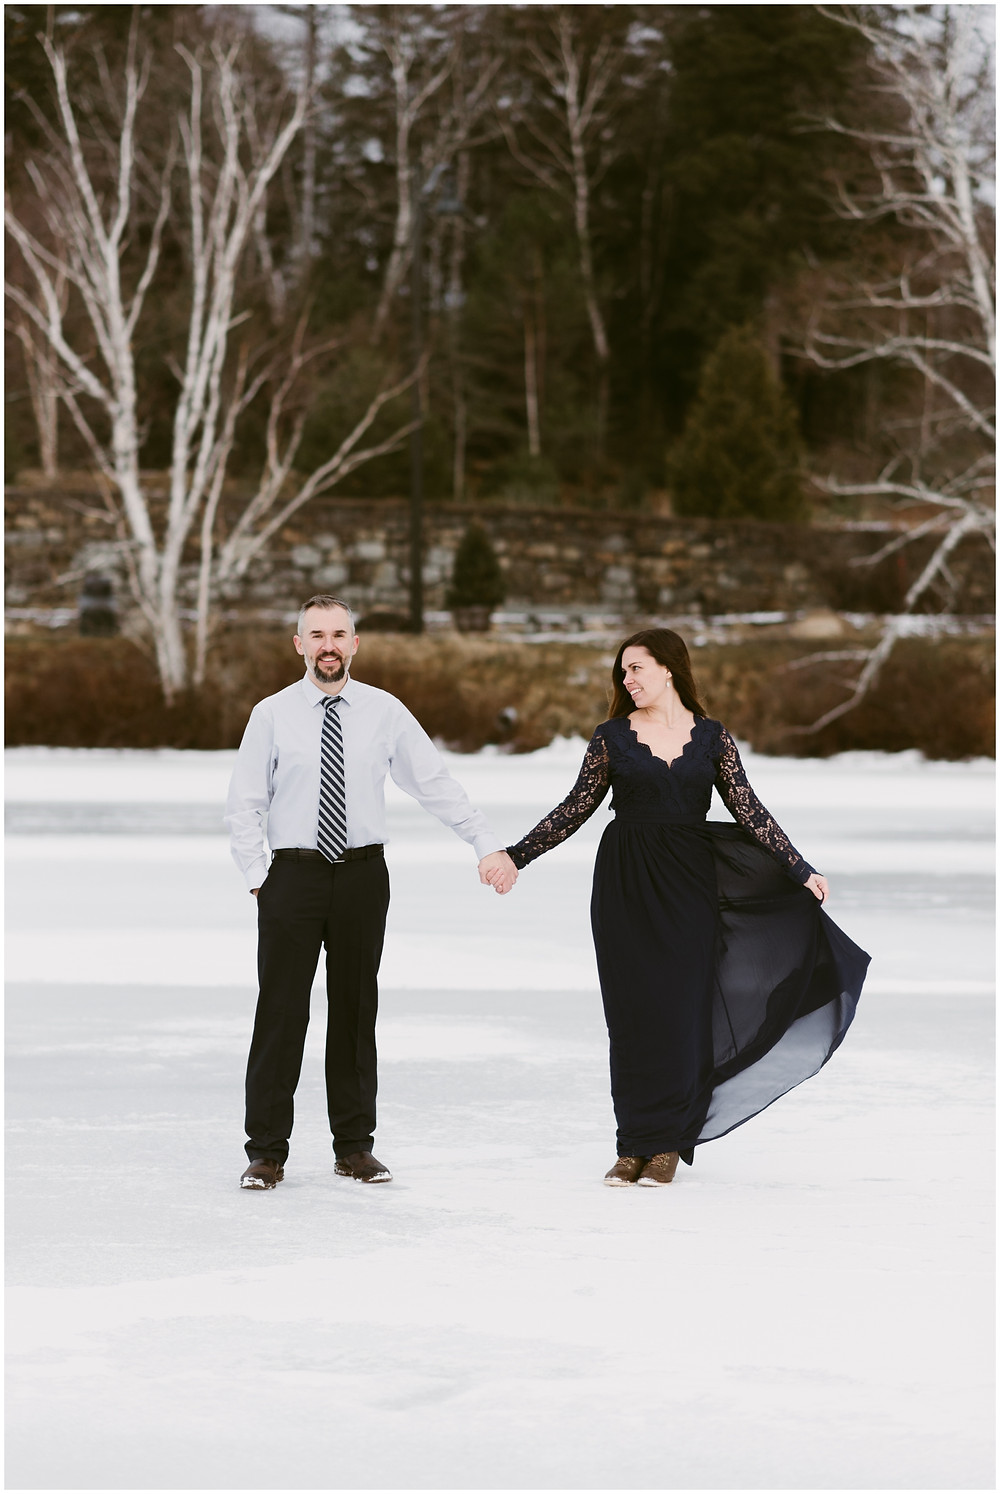 Formal engagement photo on frozen lake in the mountains by Mountainaire Gatherings